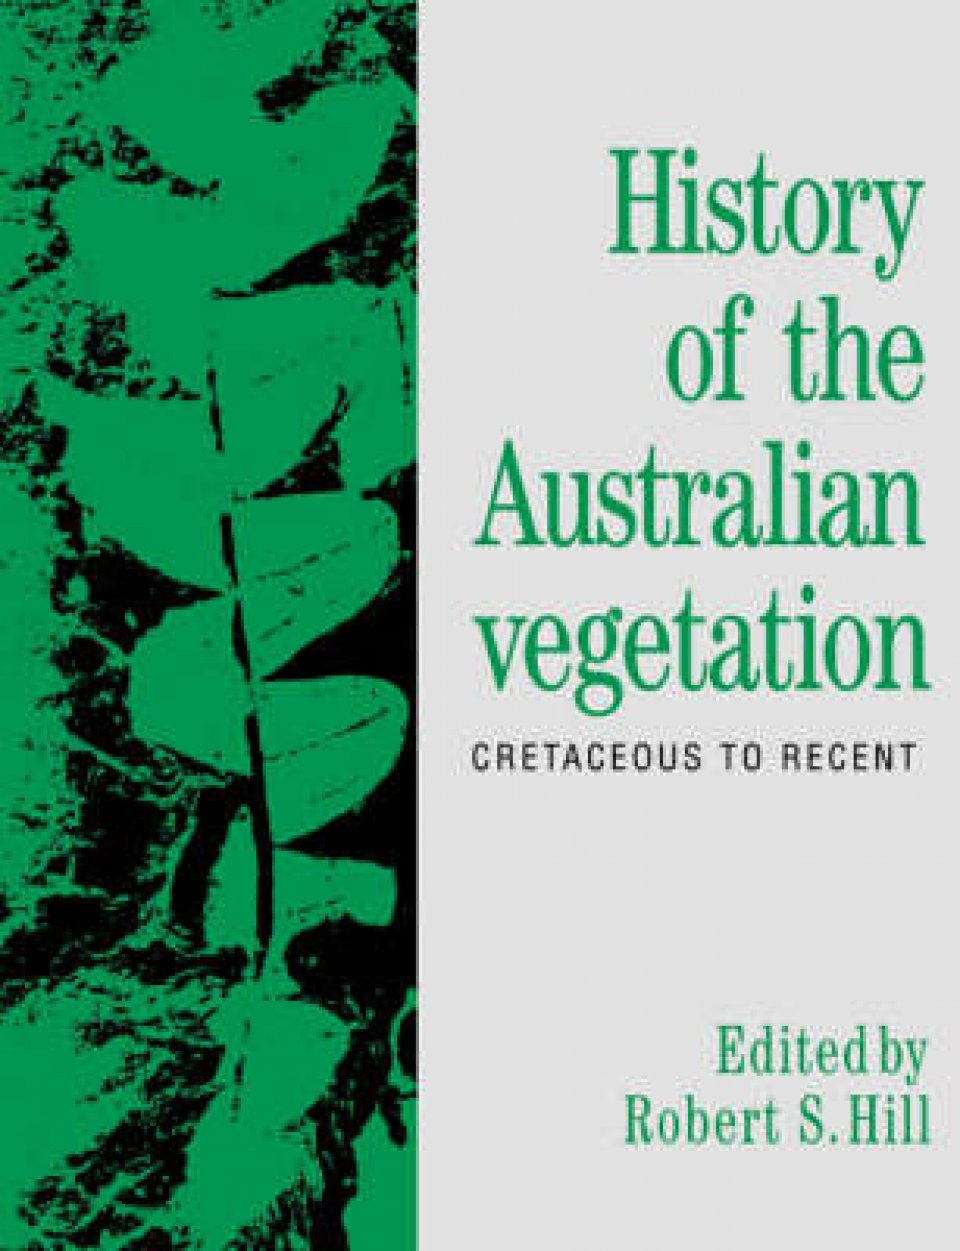 History of the Australian Vegetation